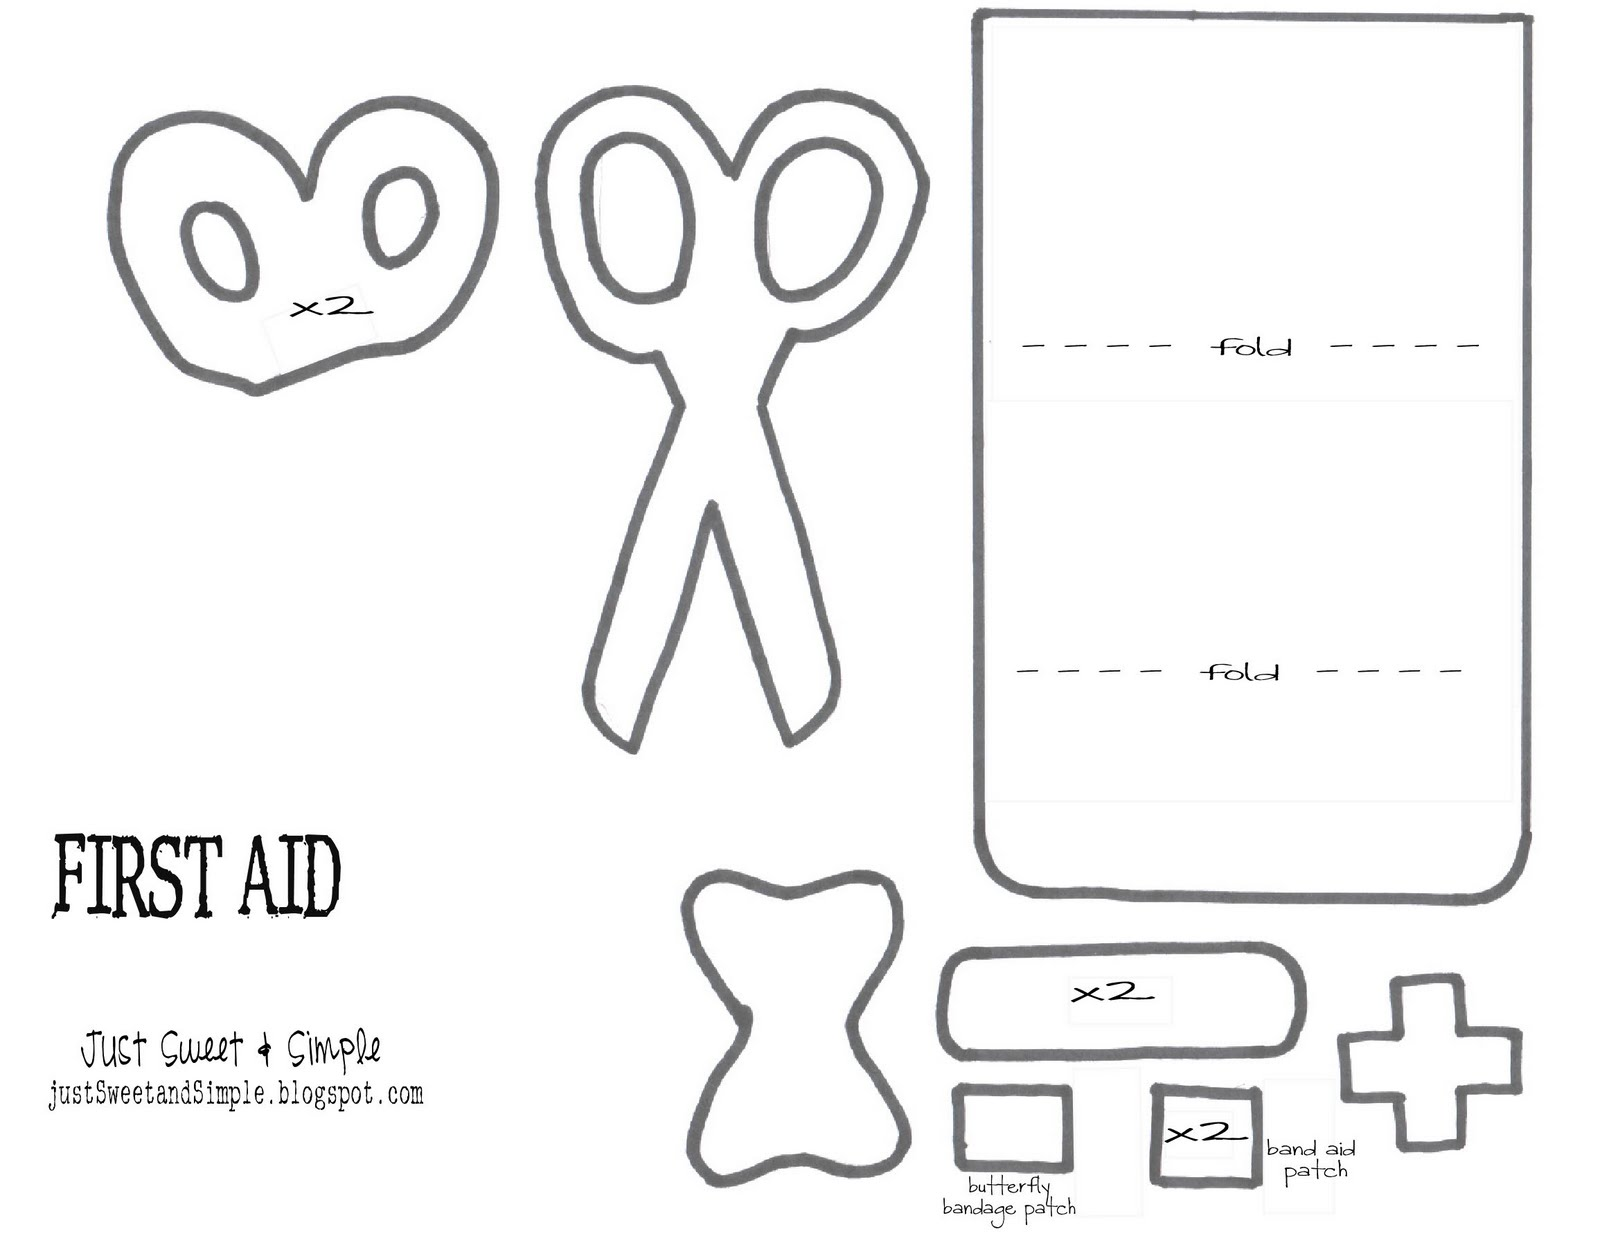 Worksheets First Aid Worksheets For Kids just sweet and simple april 2011 wednesday 13 2011